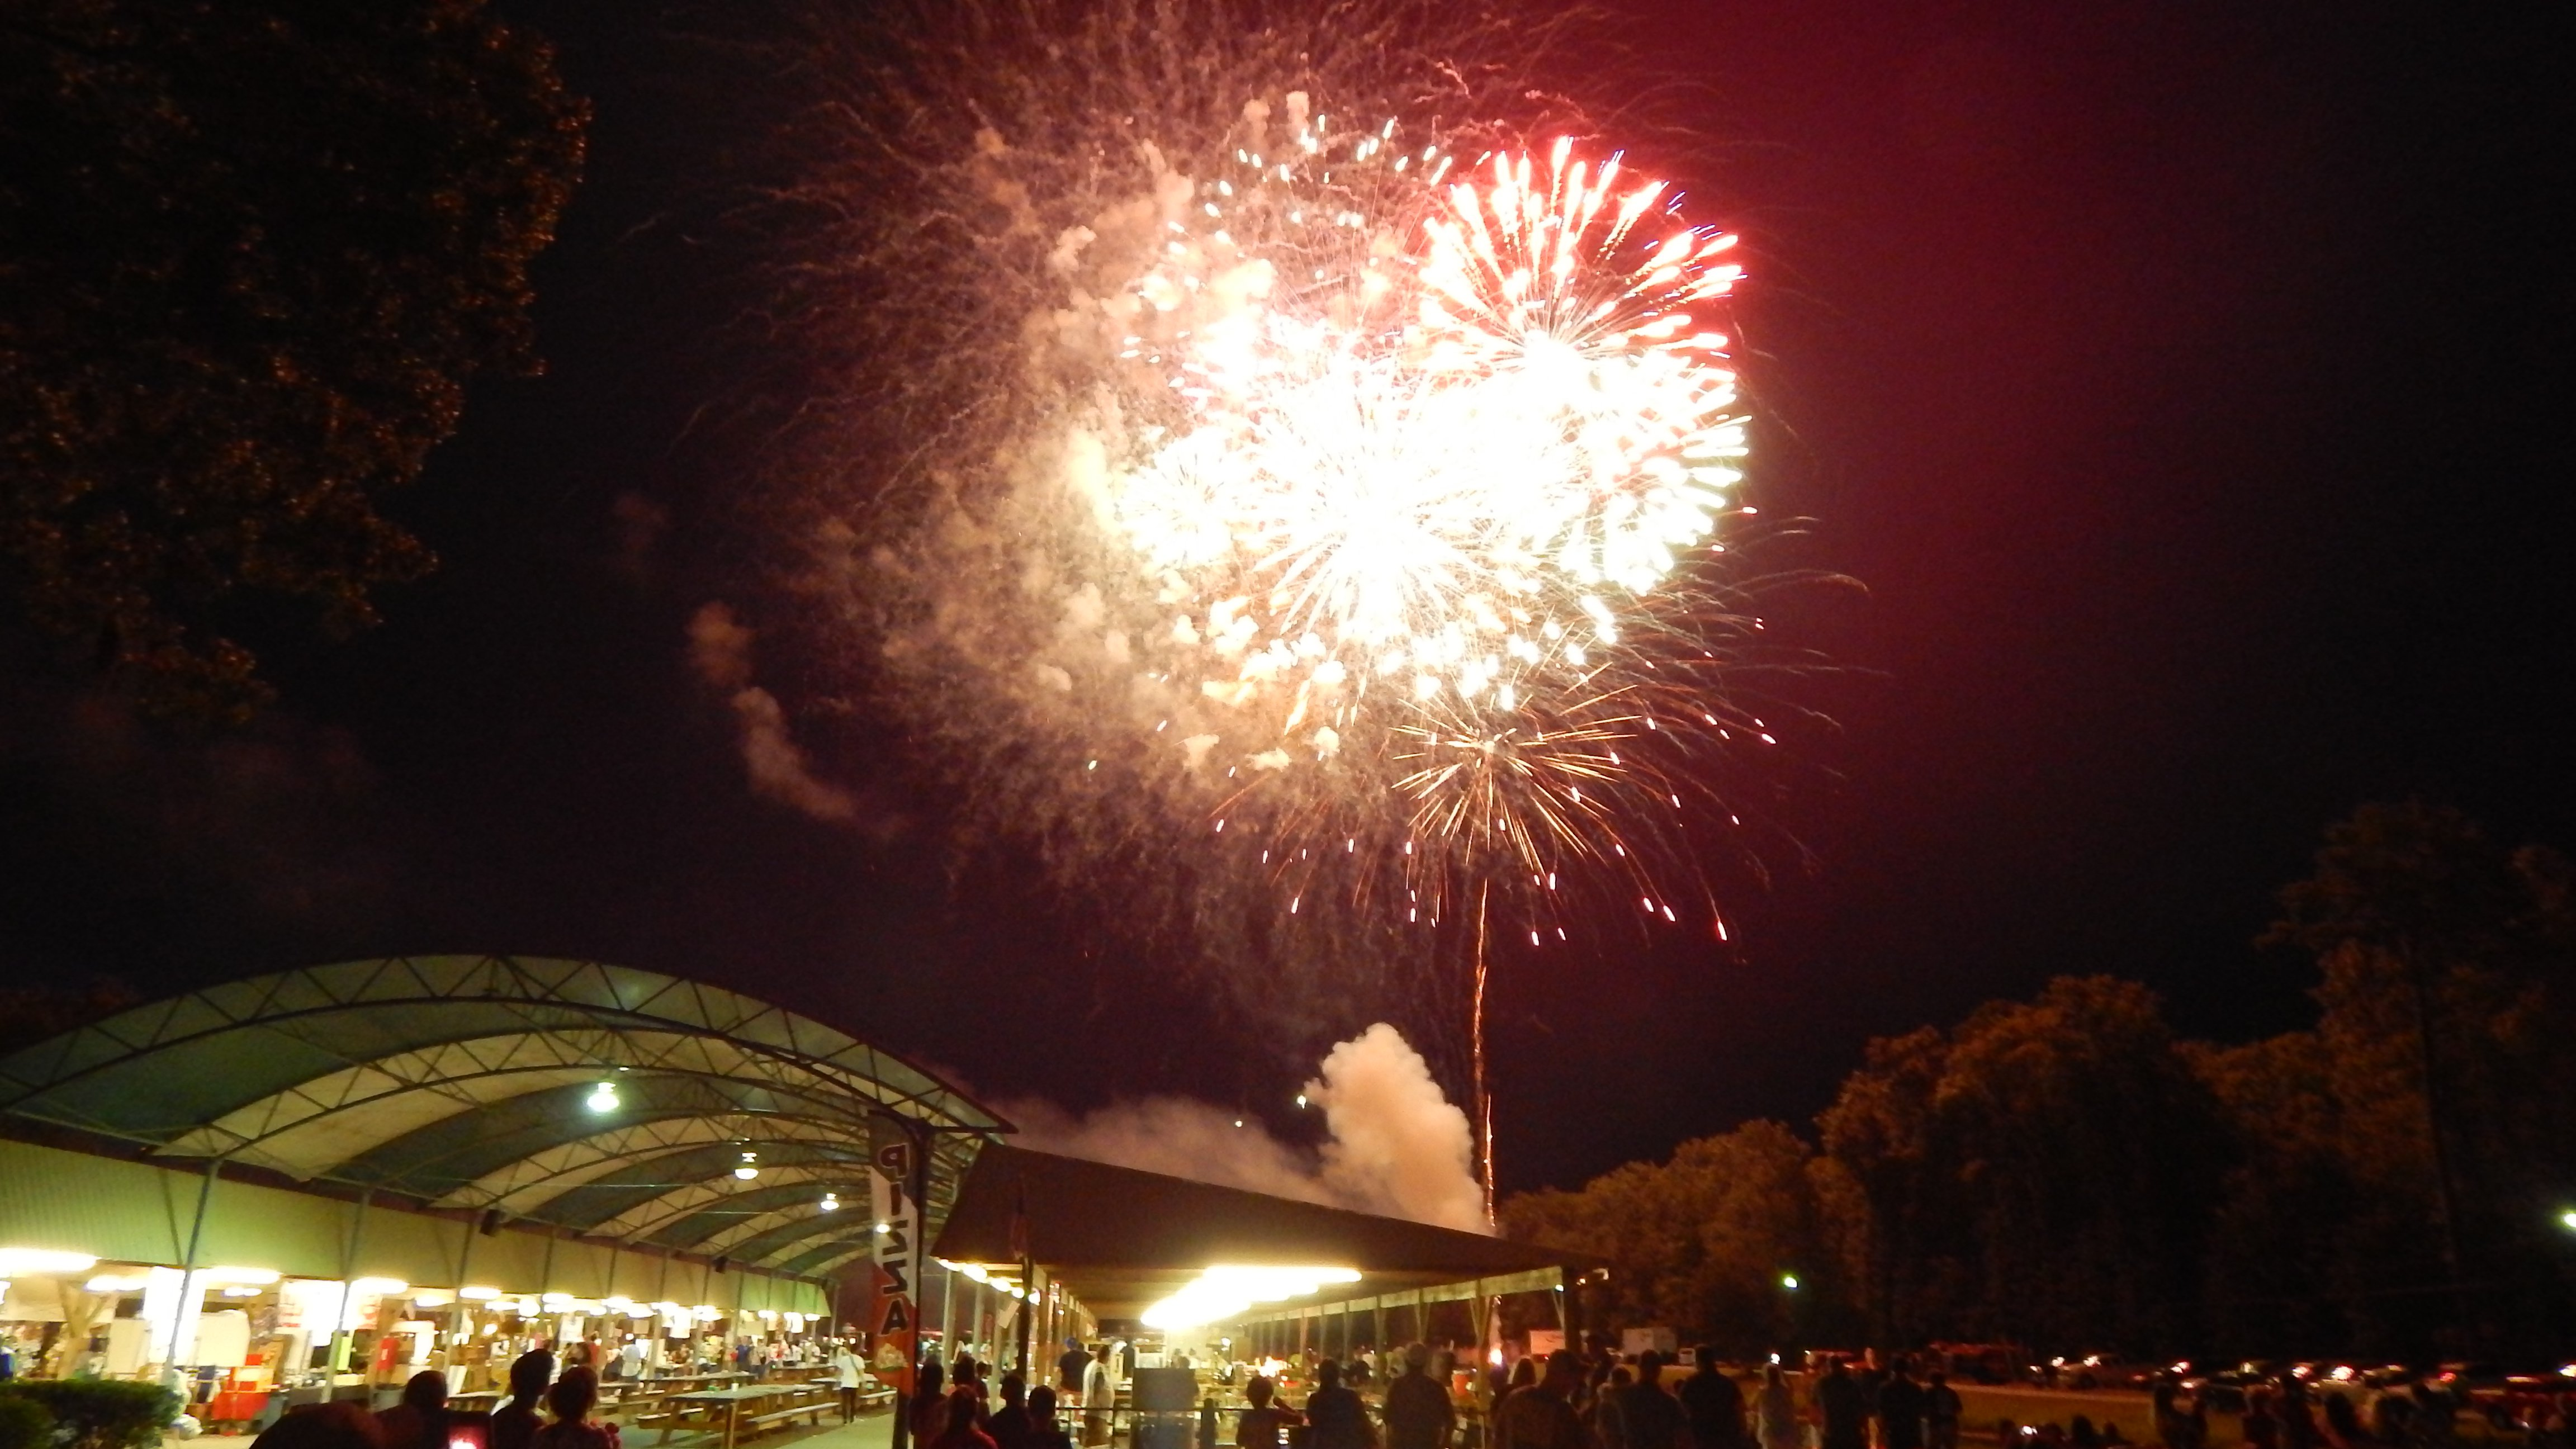 Fireworks lit up the sky over the park pavilion at the conclusion. Photo by Mark Swendra.